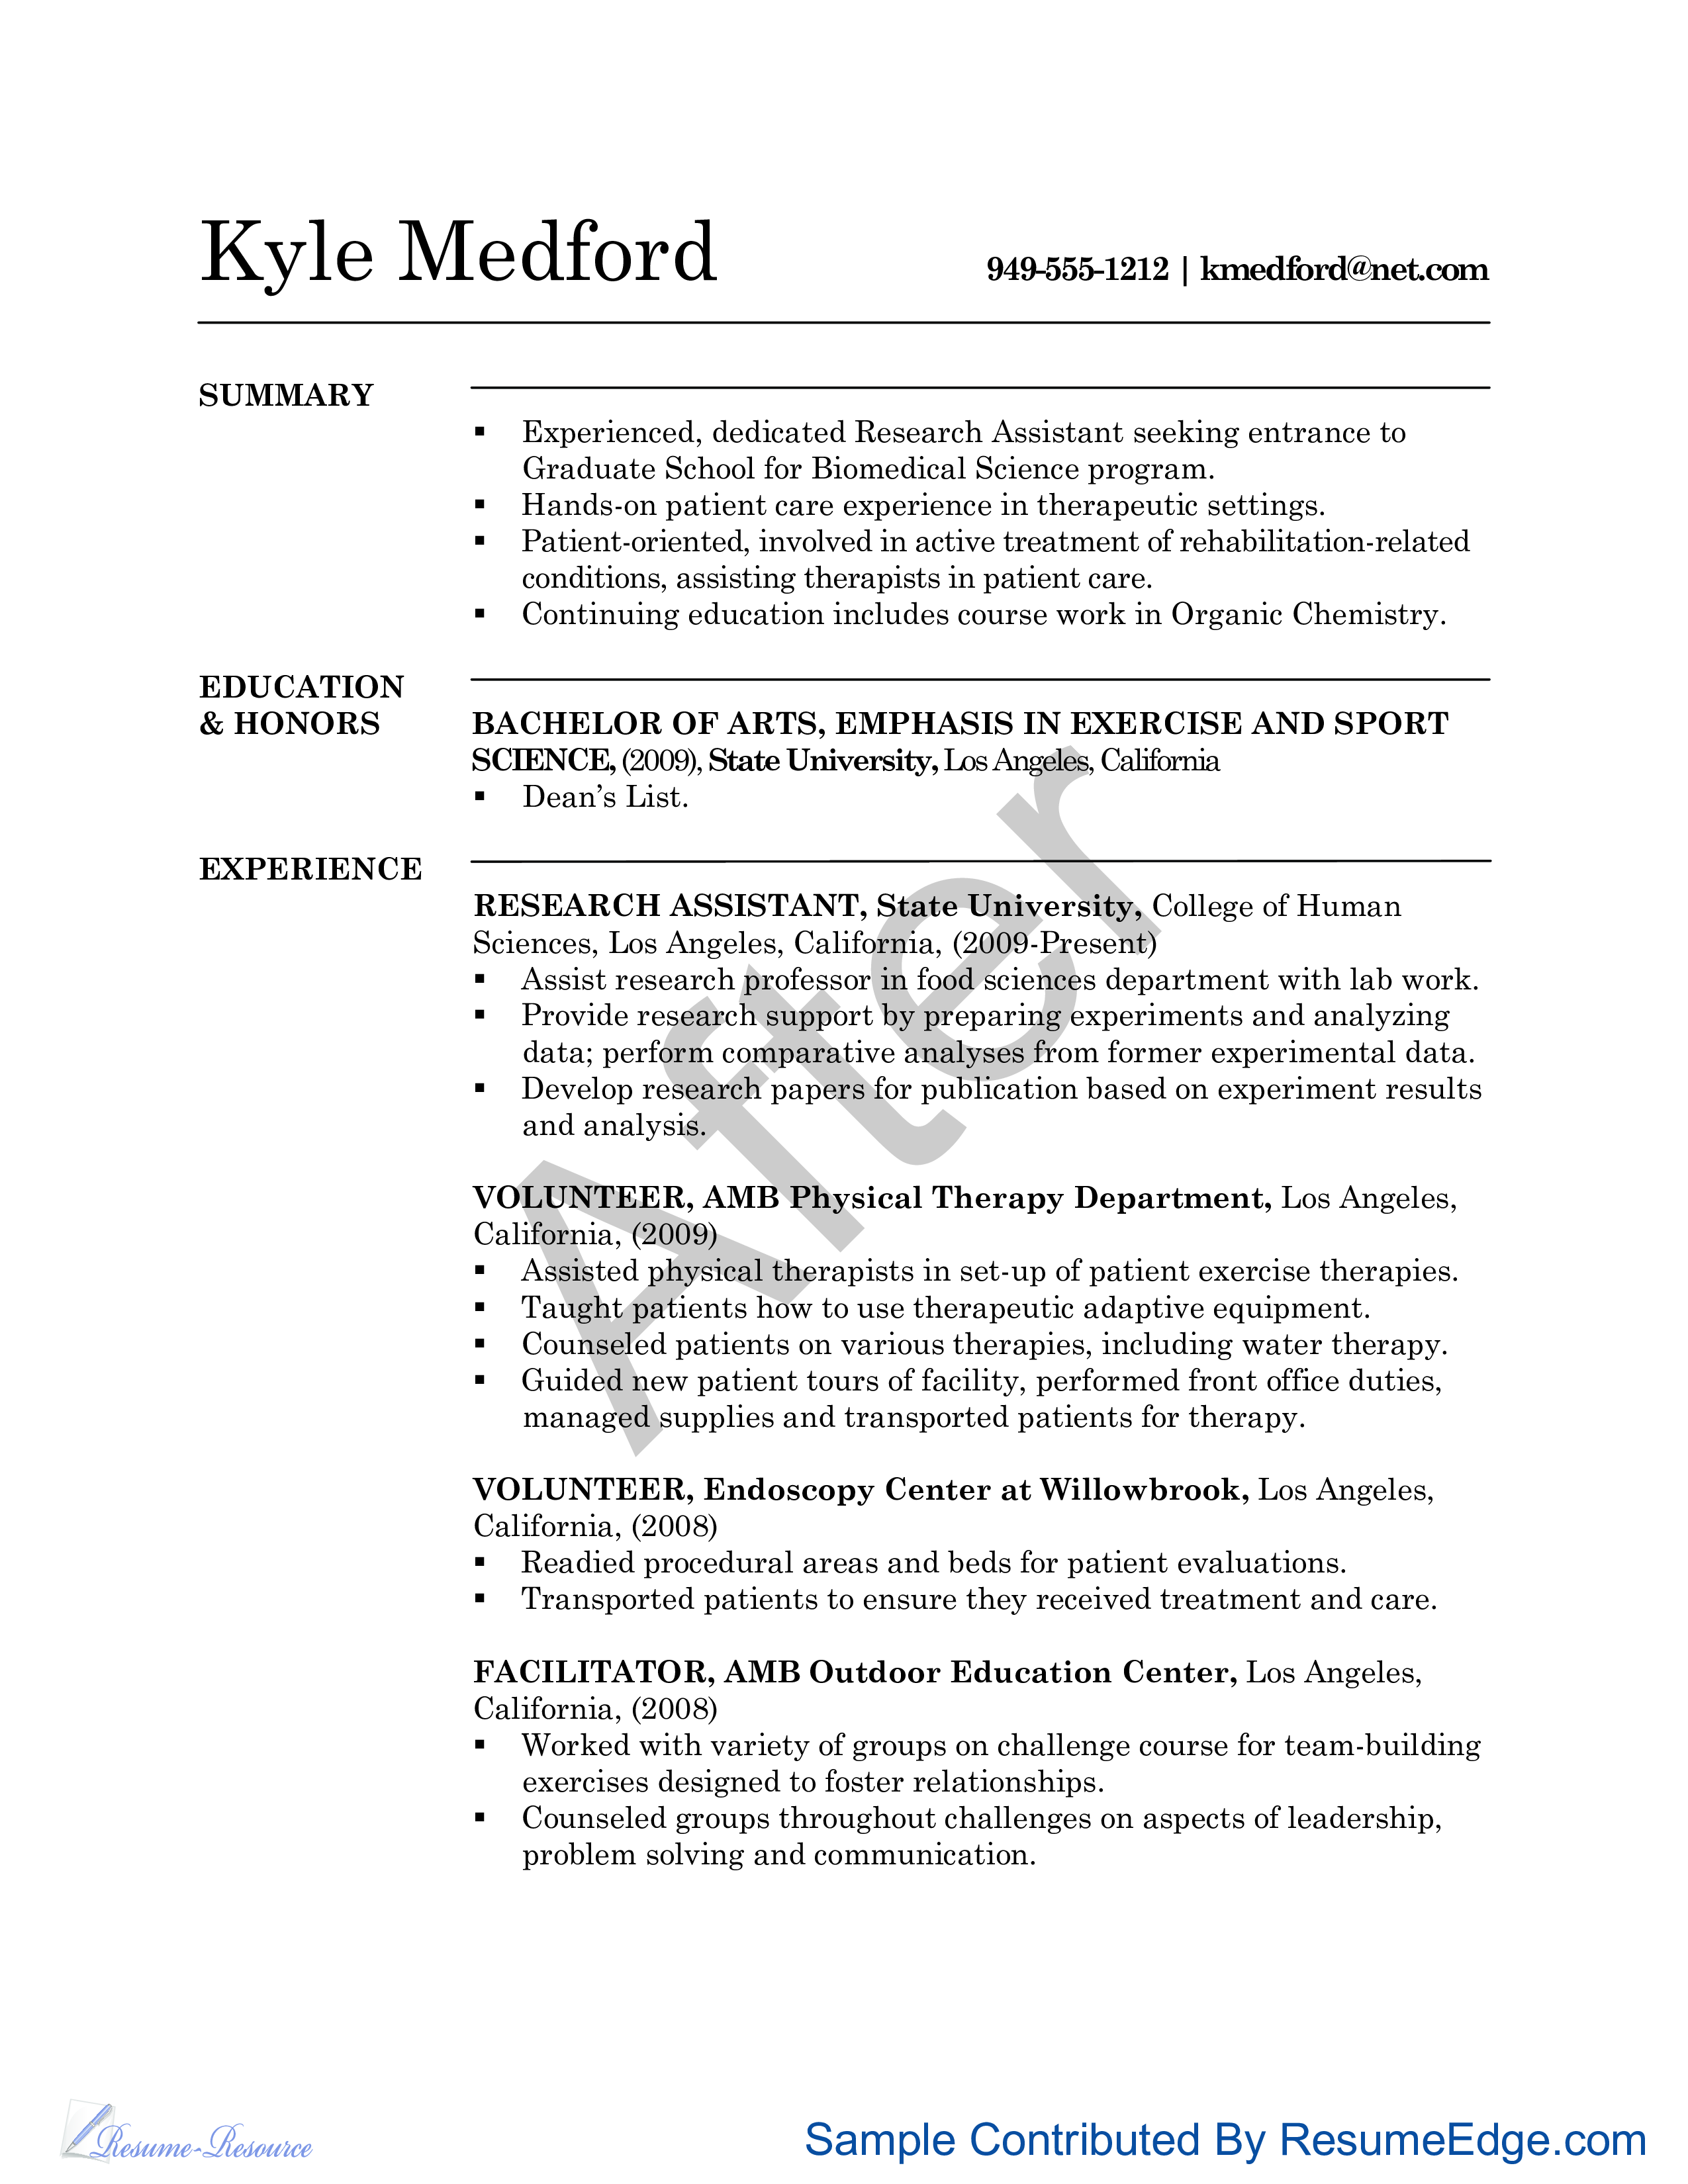 research assistant cv sample main image